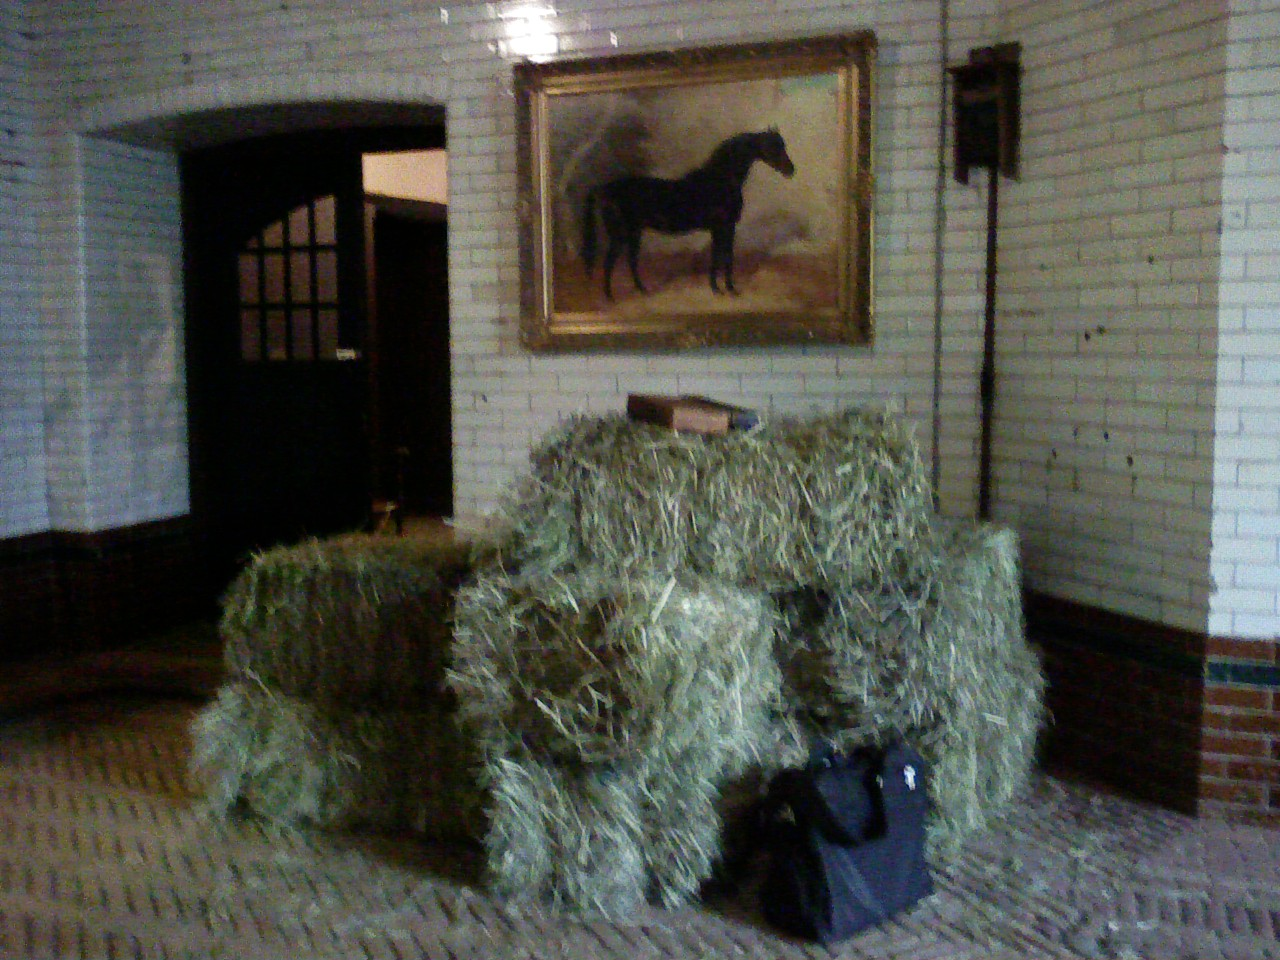 ufp-horse-stables-1.jpg